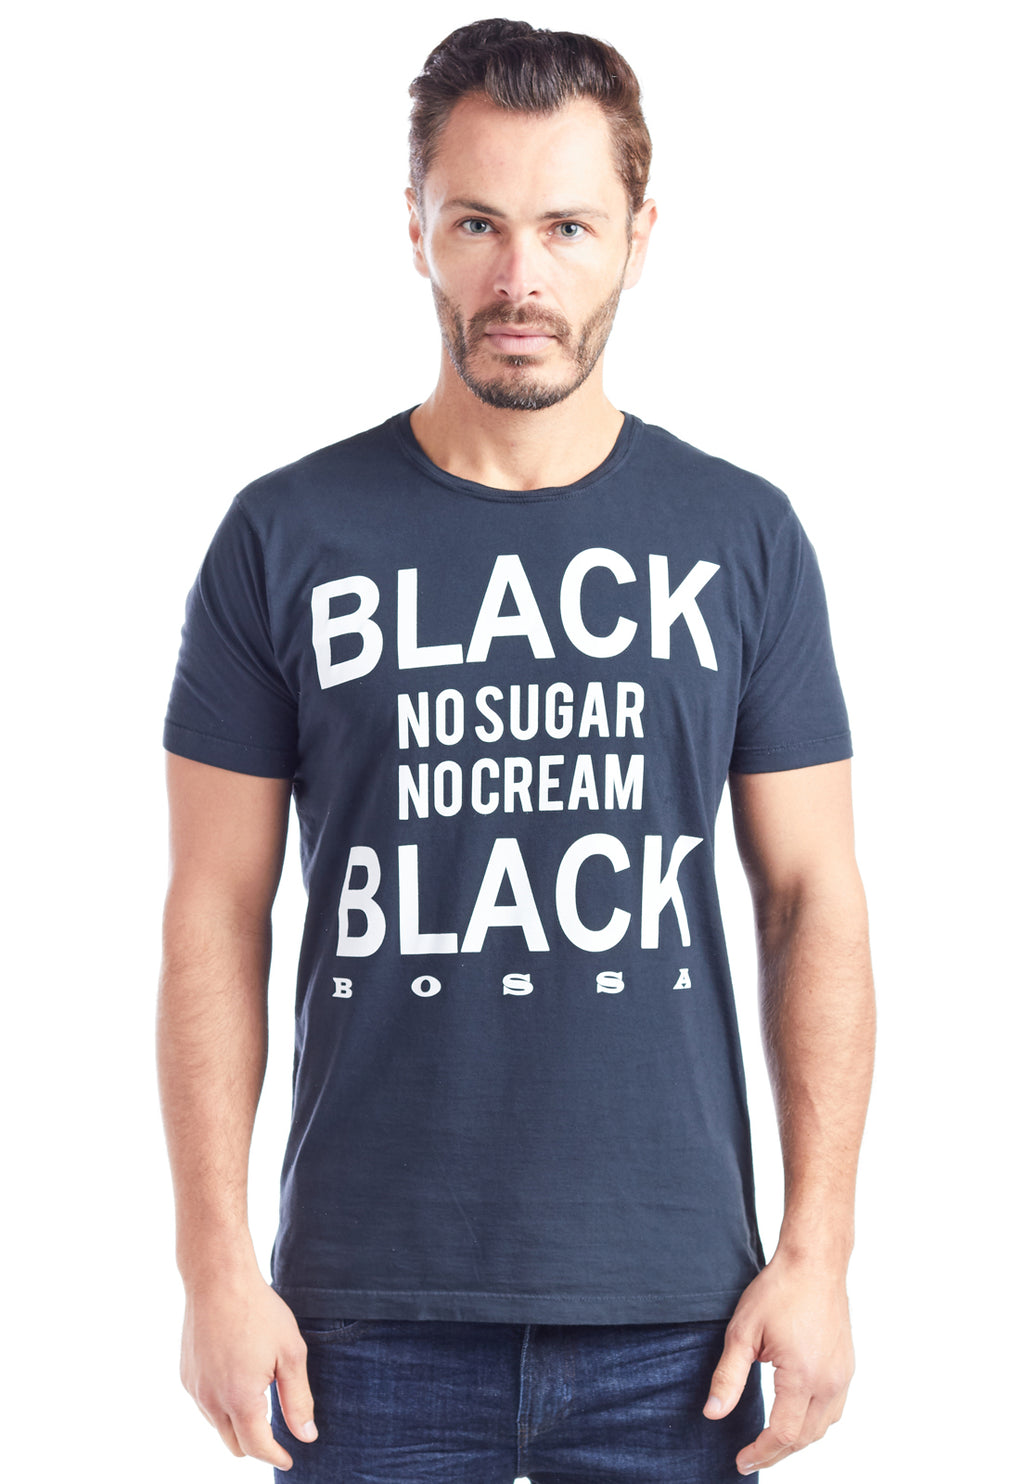 CAMISETA MASCULINA ESTAMPADA - BLACK